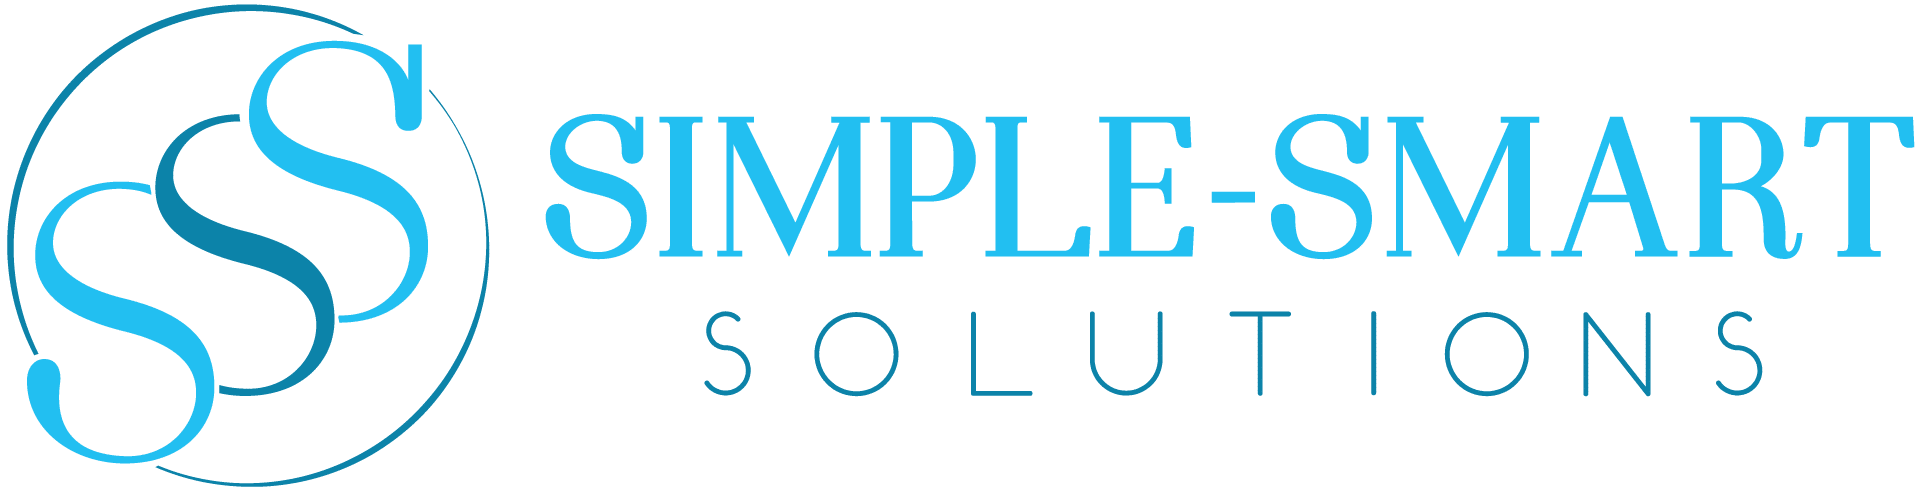 Simple-Smart Solutions